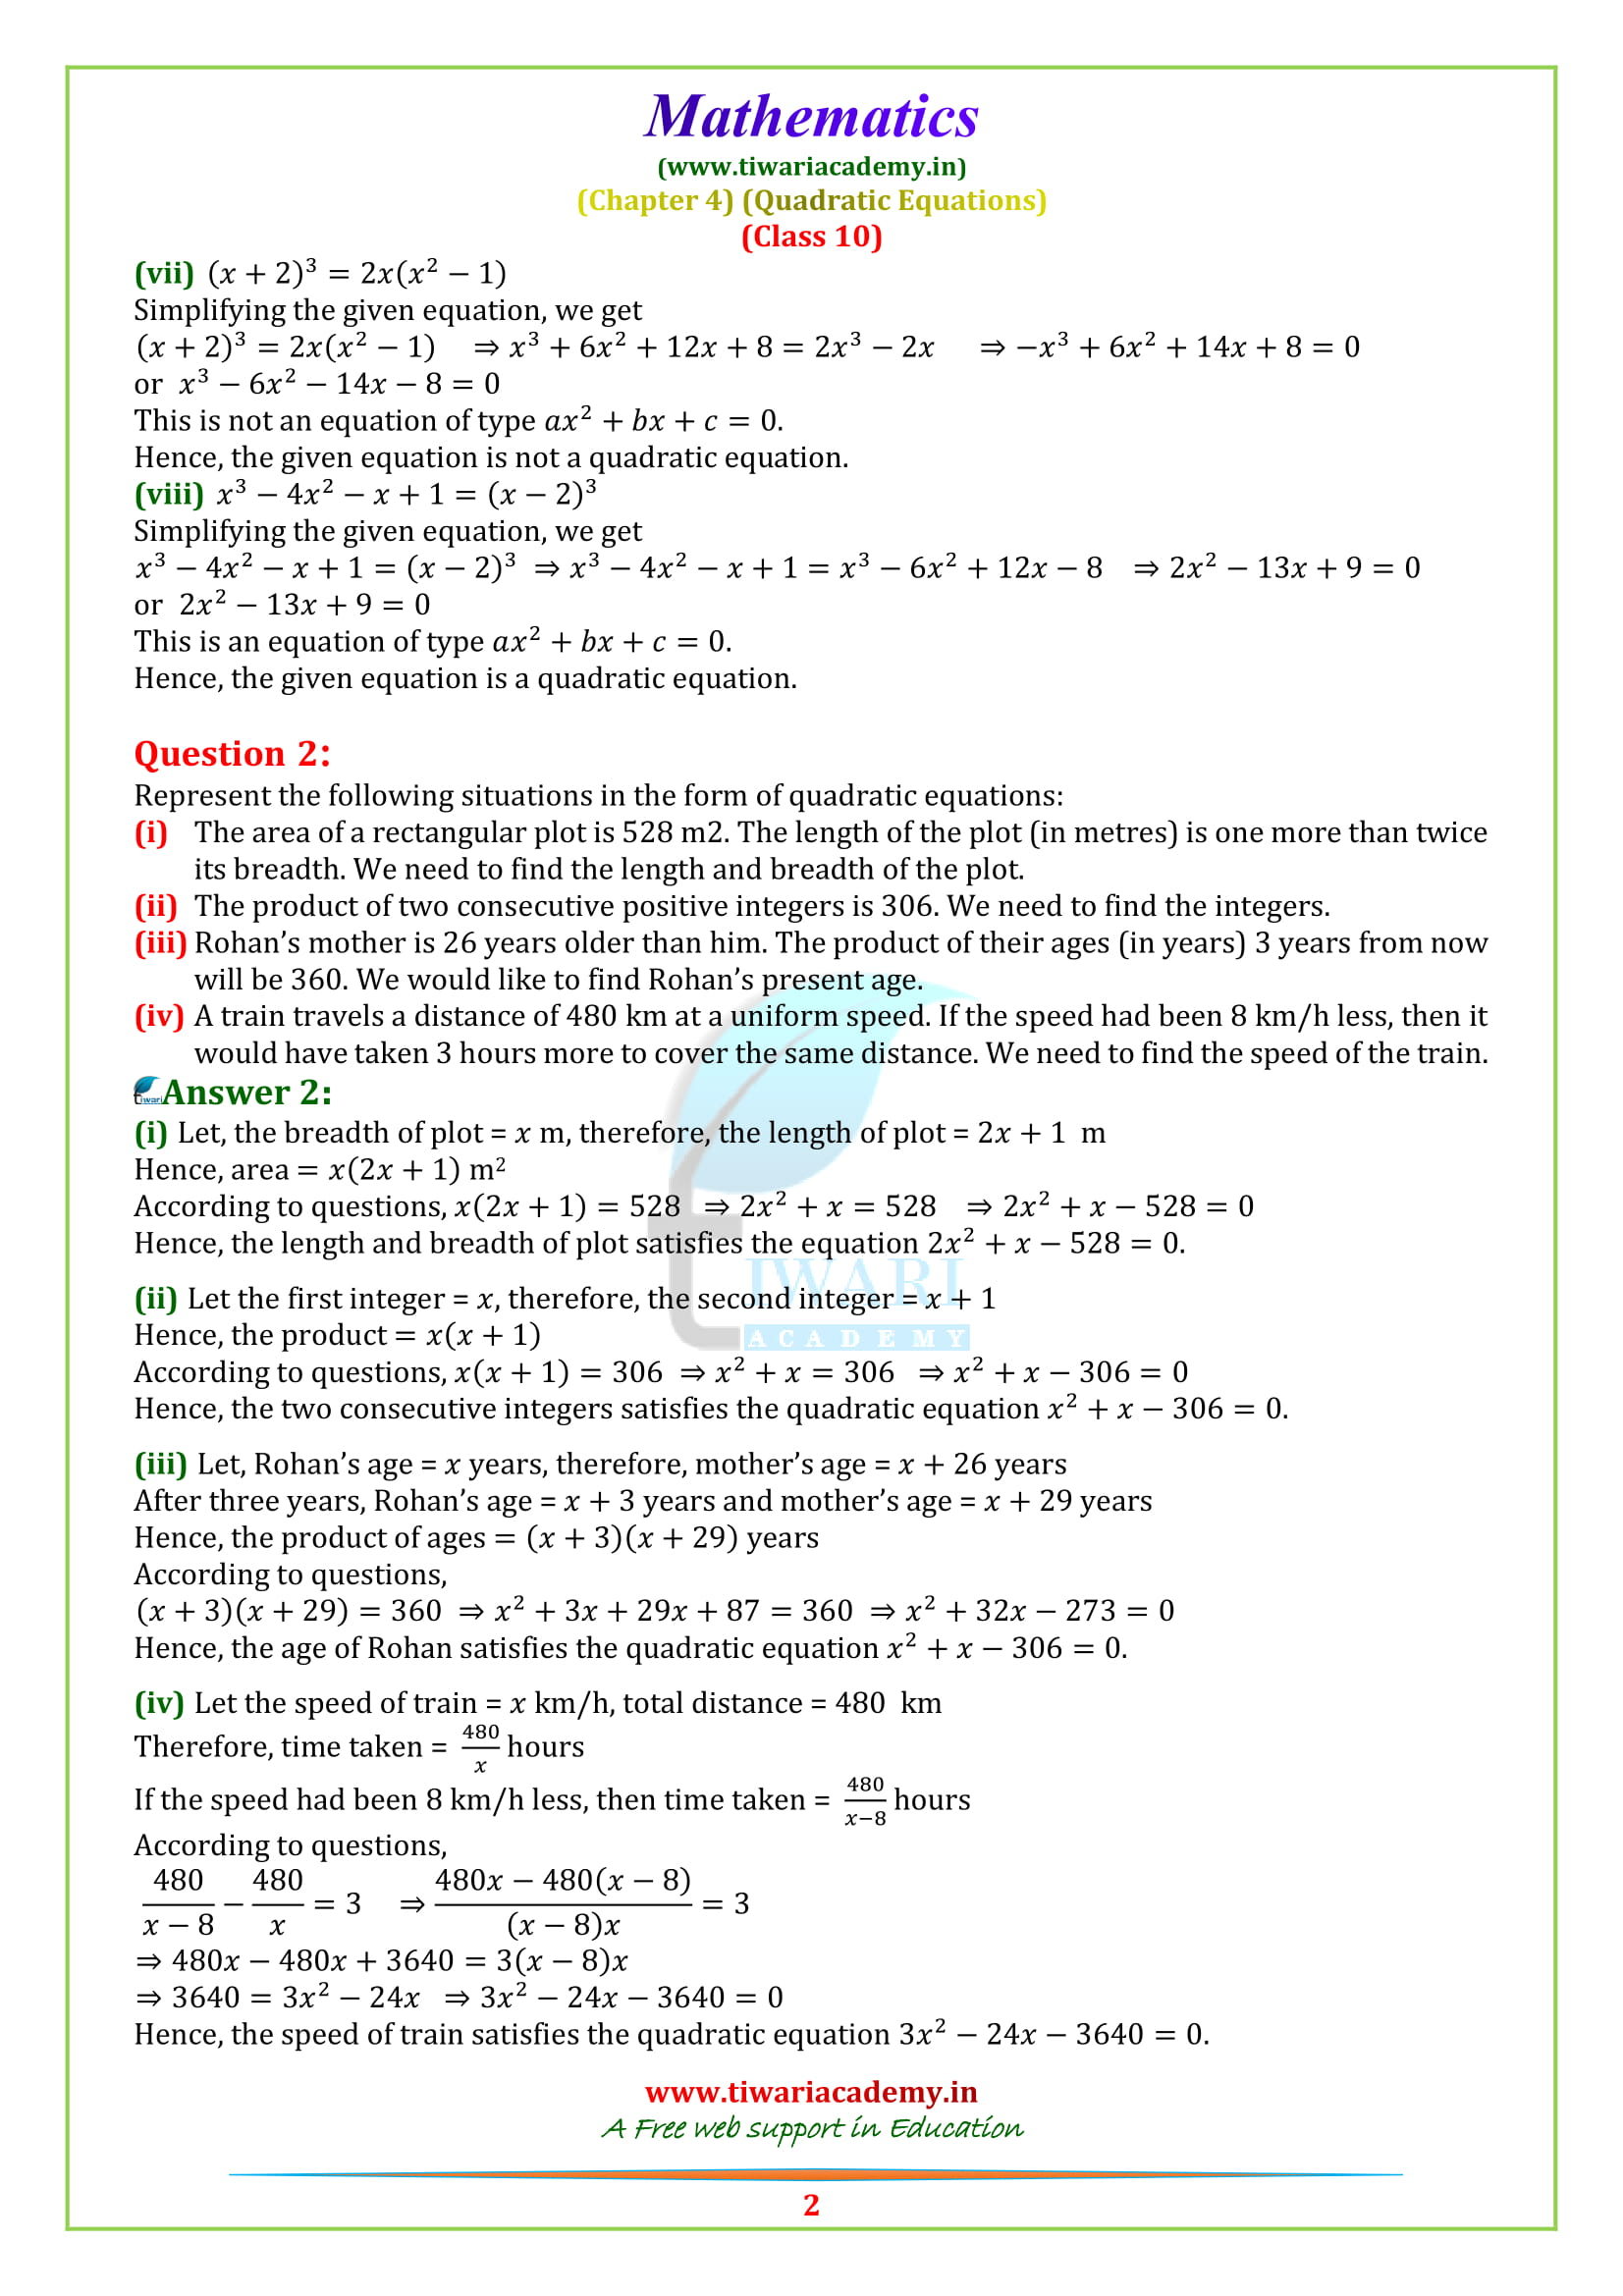 10 Maths Exercise 4.1 sols for 2018-19.